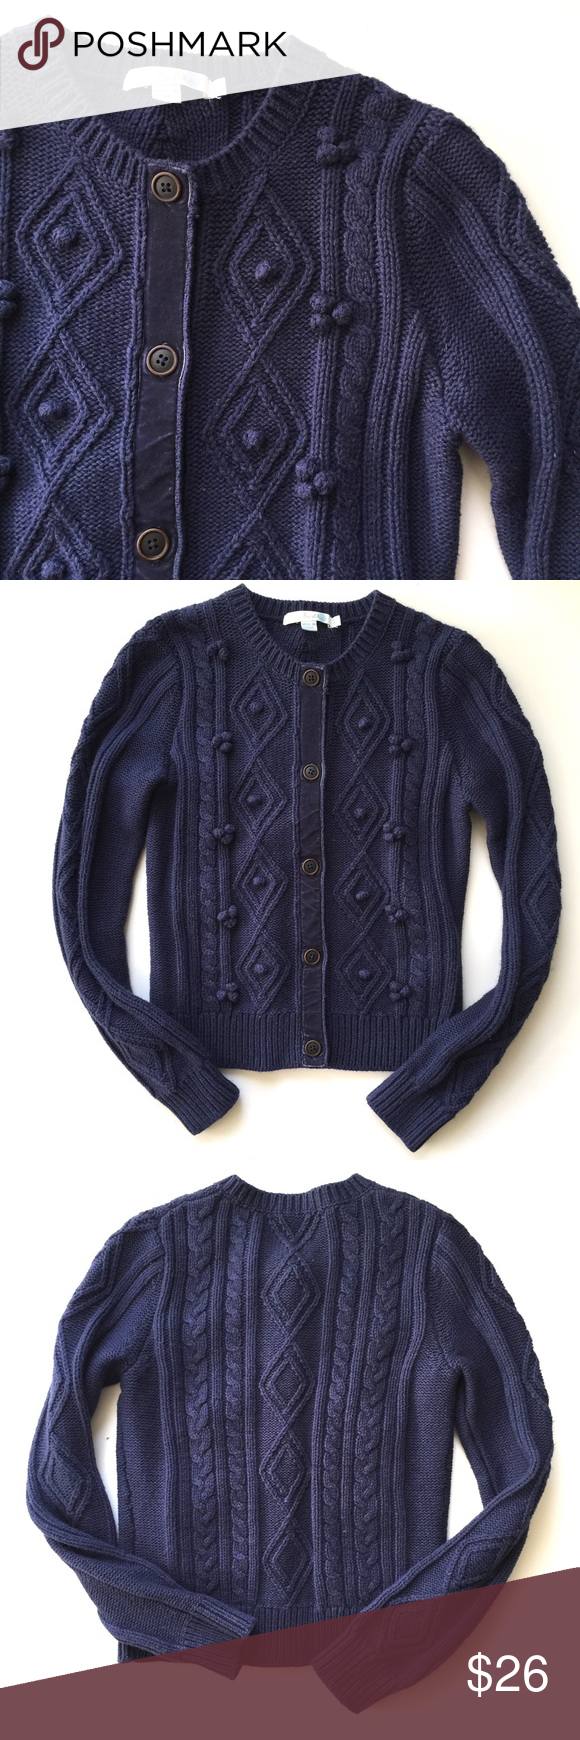 Boden Navy Classic Cozy Cable Knit Cardigan // 4 | Dark, Sweater ...